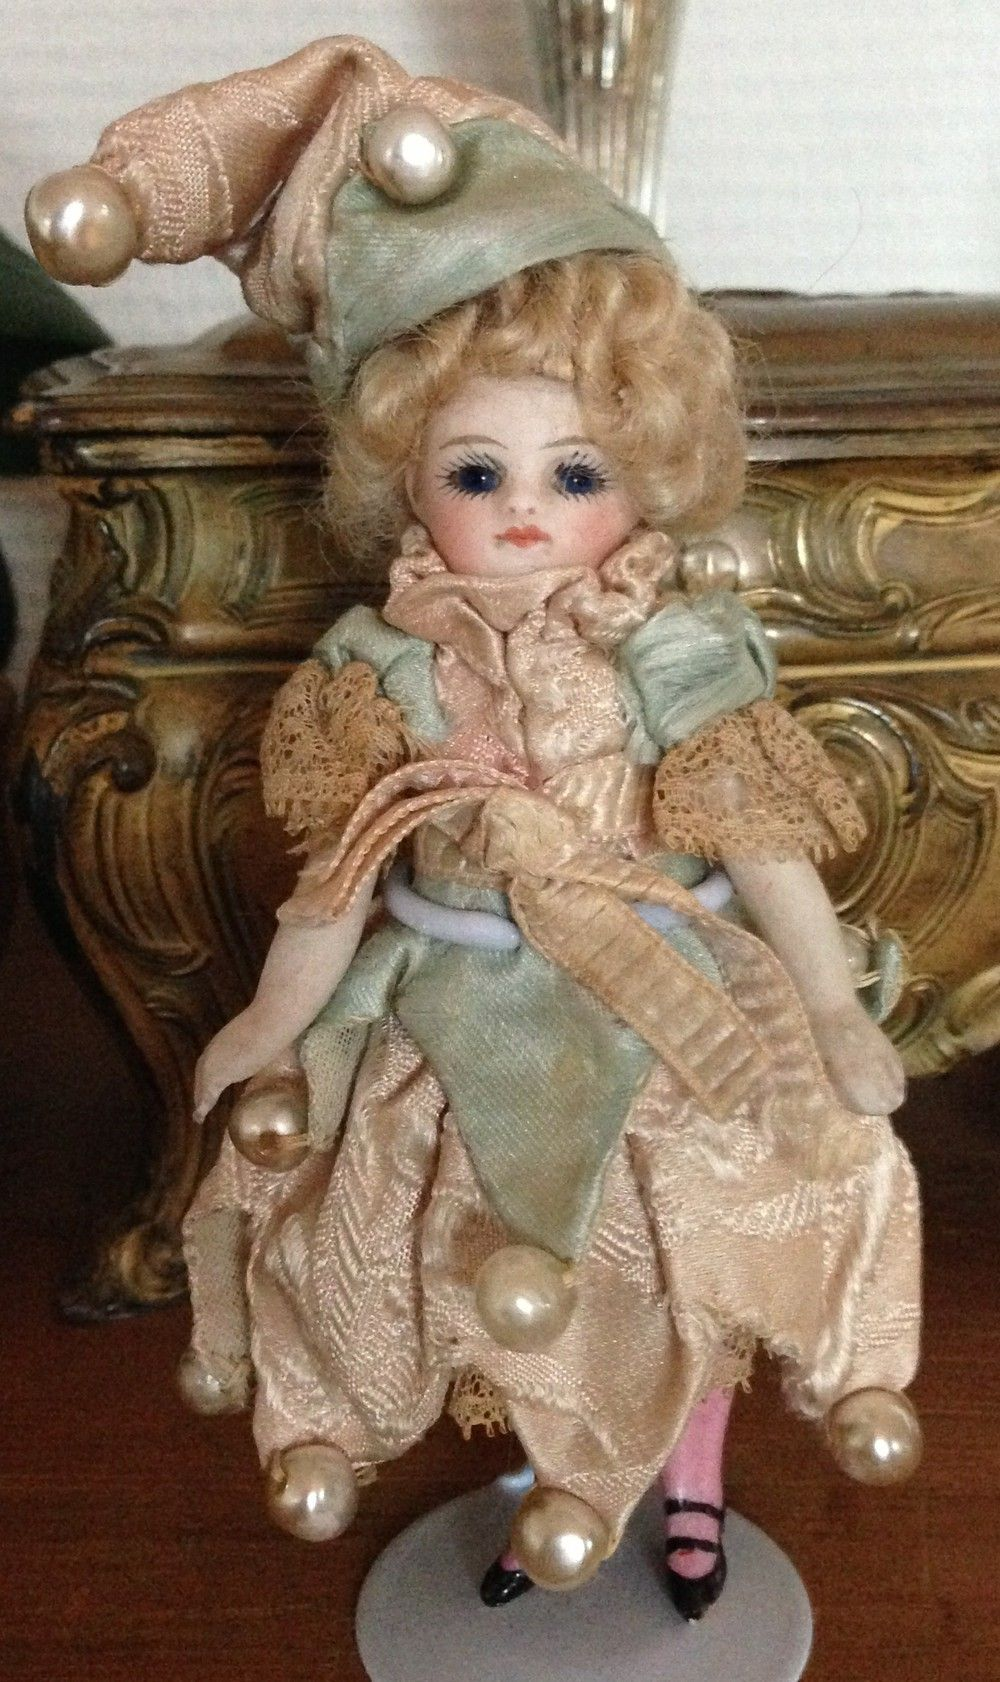 Beautiful rare French all-bisque Mignonette doll via rarities4you, Switzerland. Click on the image to see more!